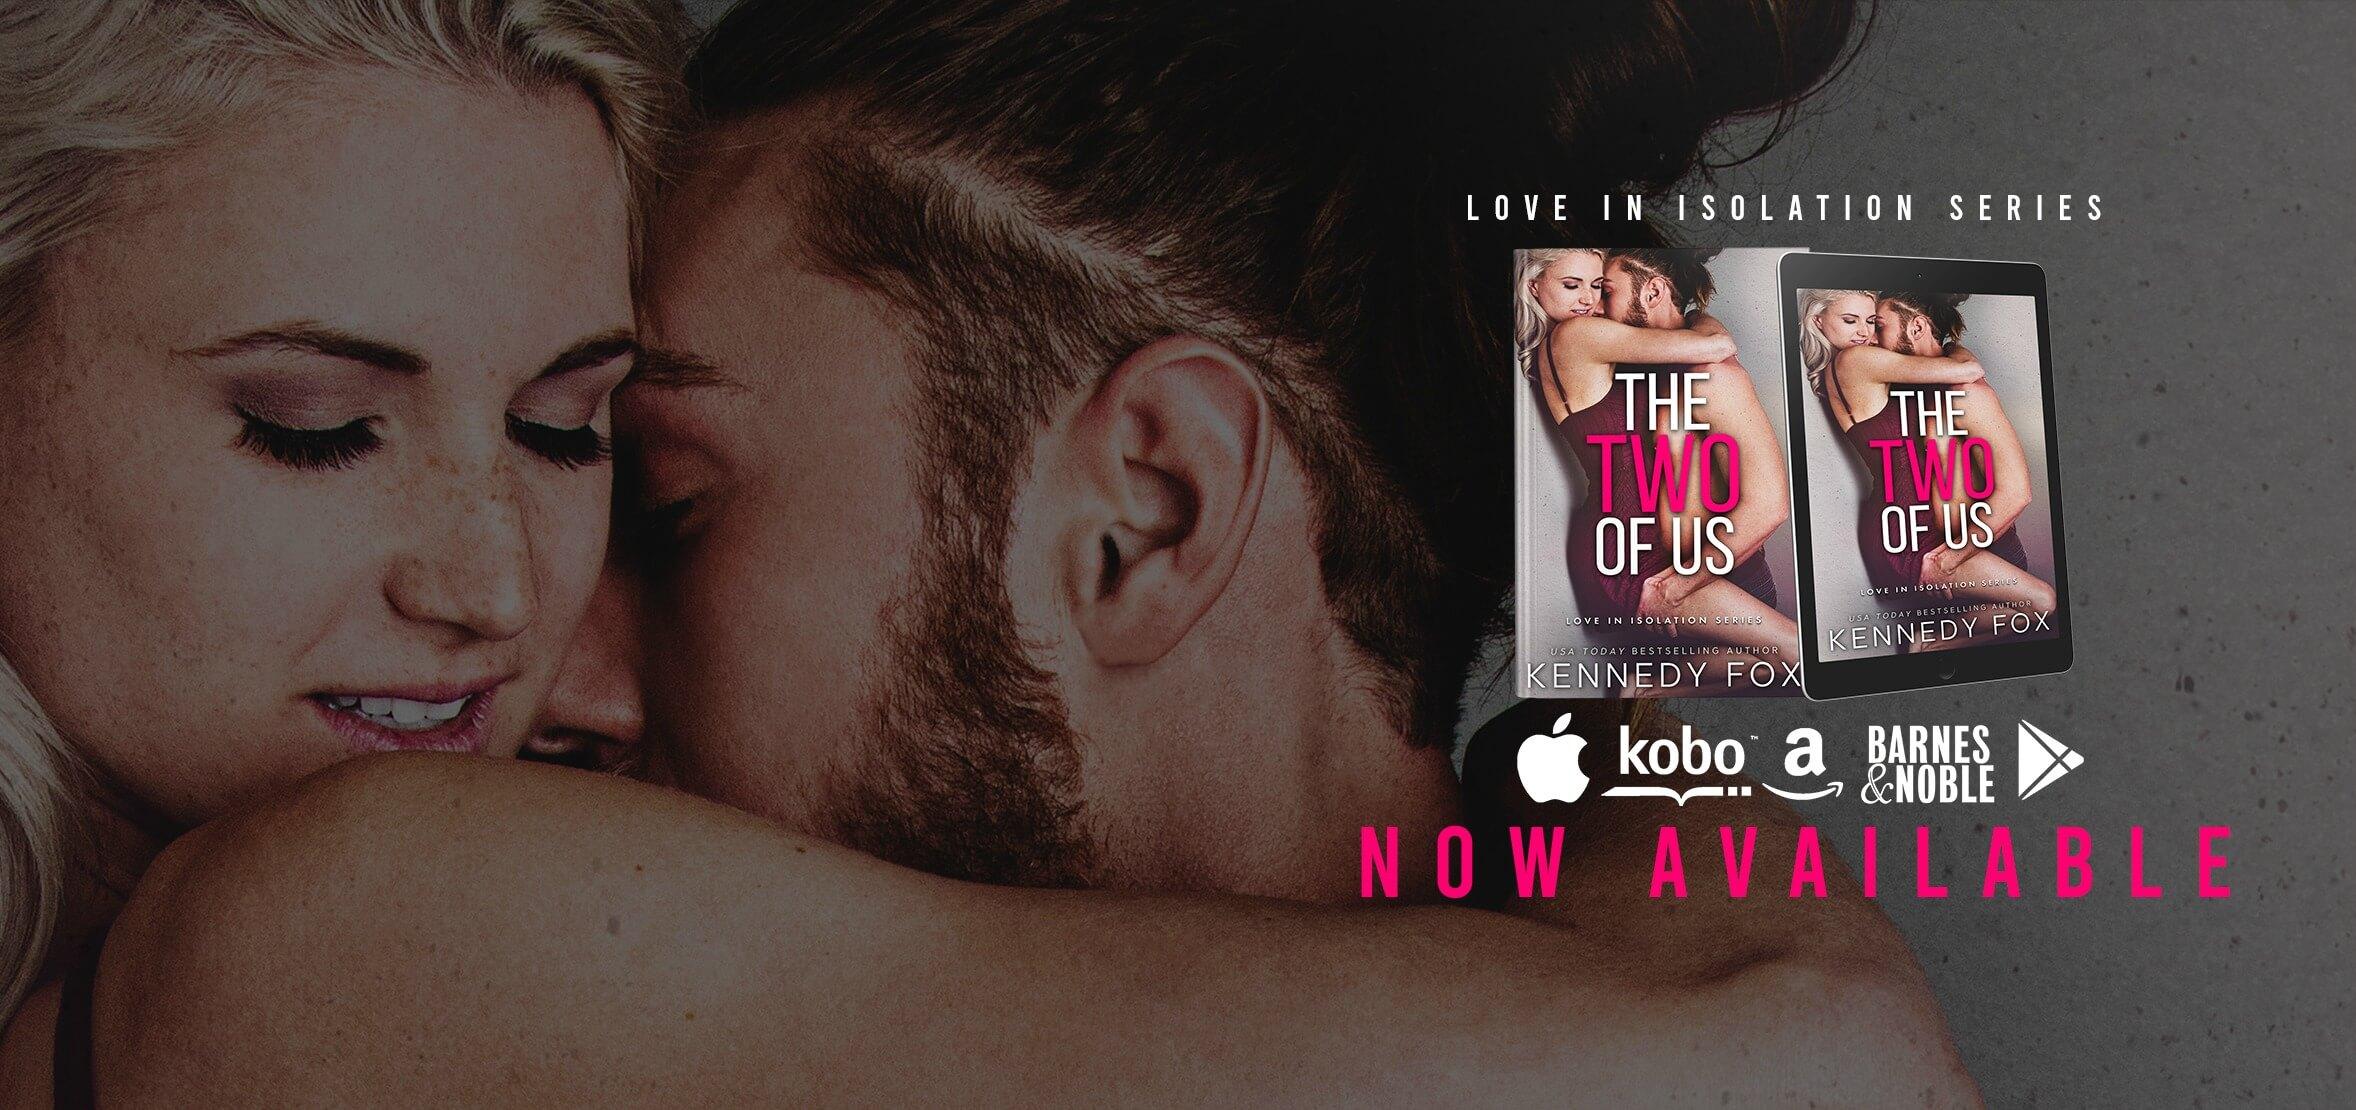 Blog Tour Review:  The Two of Us (Love in Isolation #1) by Kennedy Fox